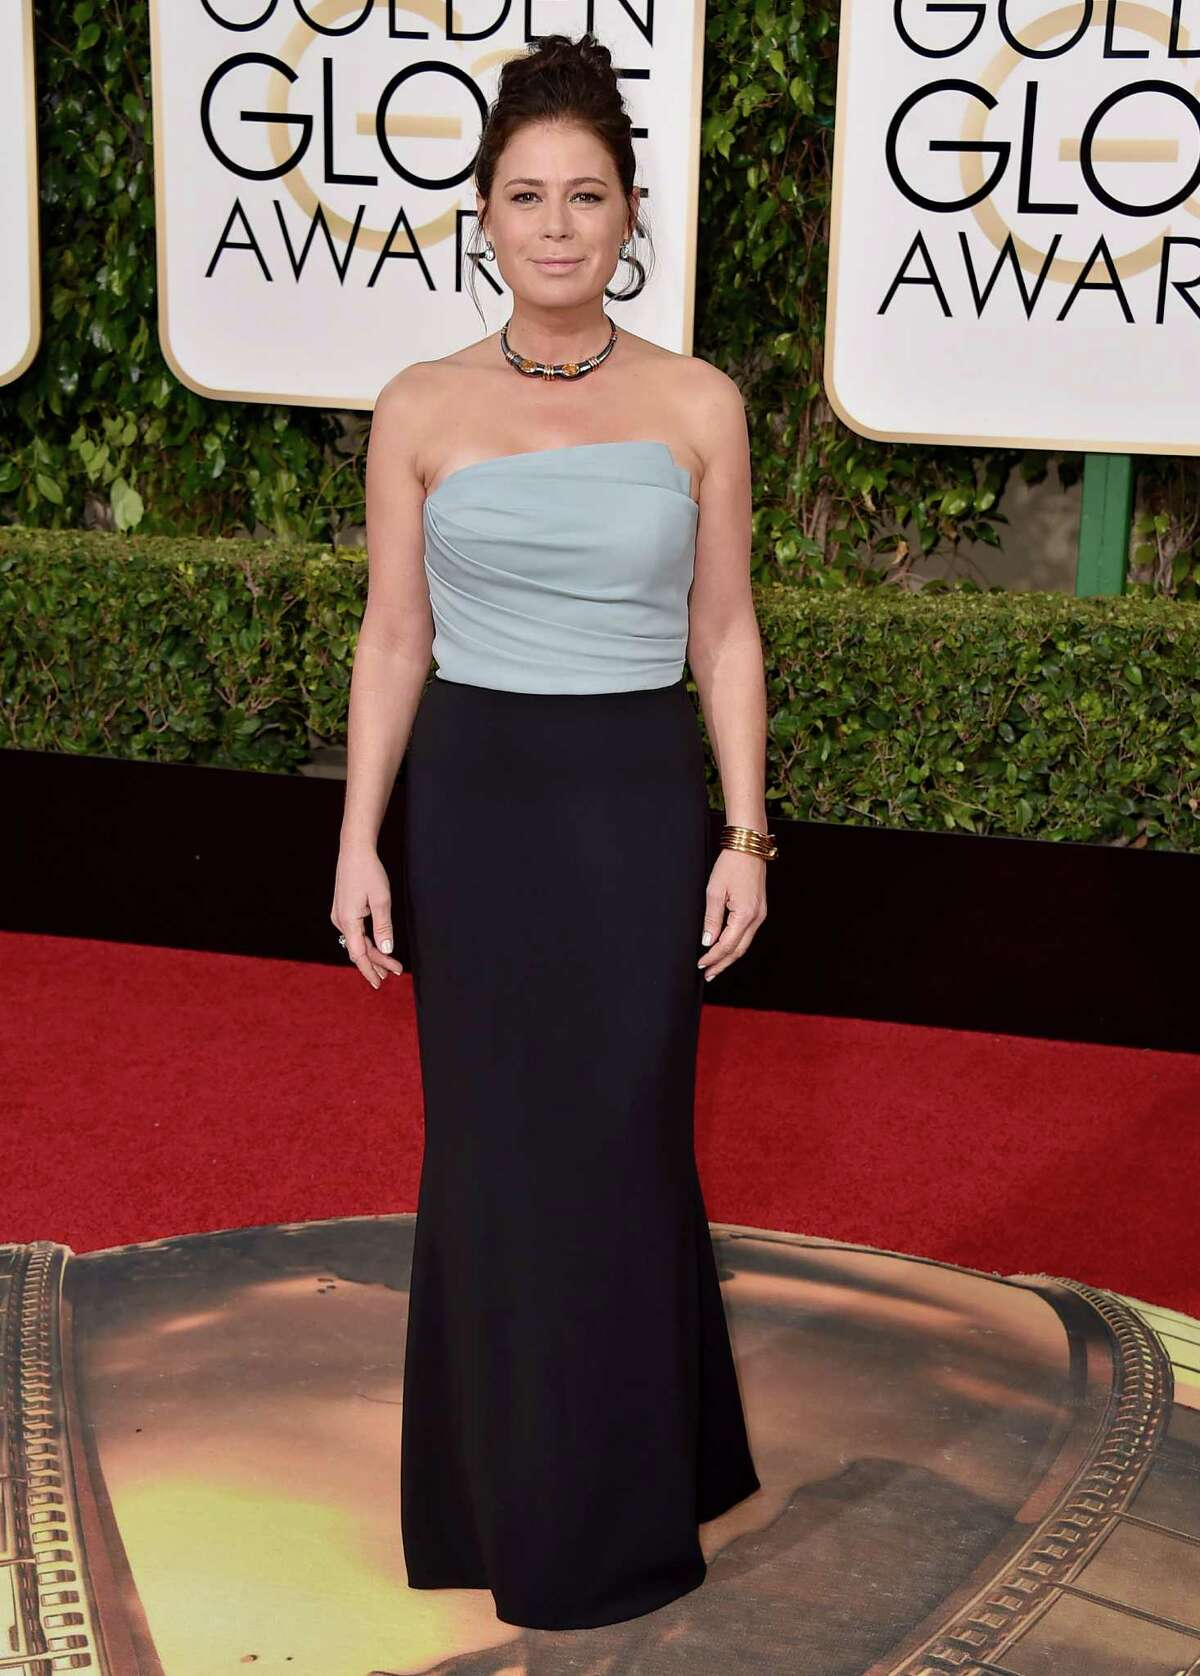 Maura Tierney - Best She makes those glasses look glamorous.